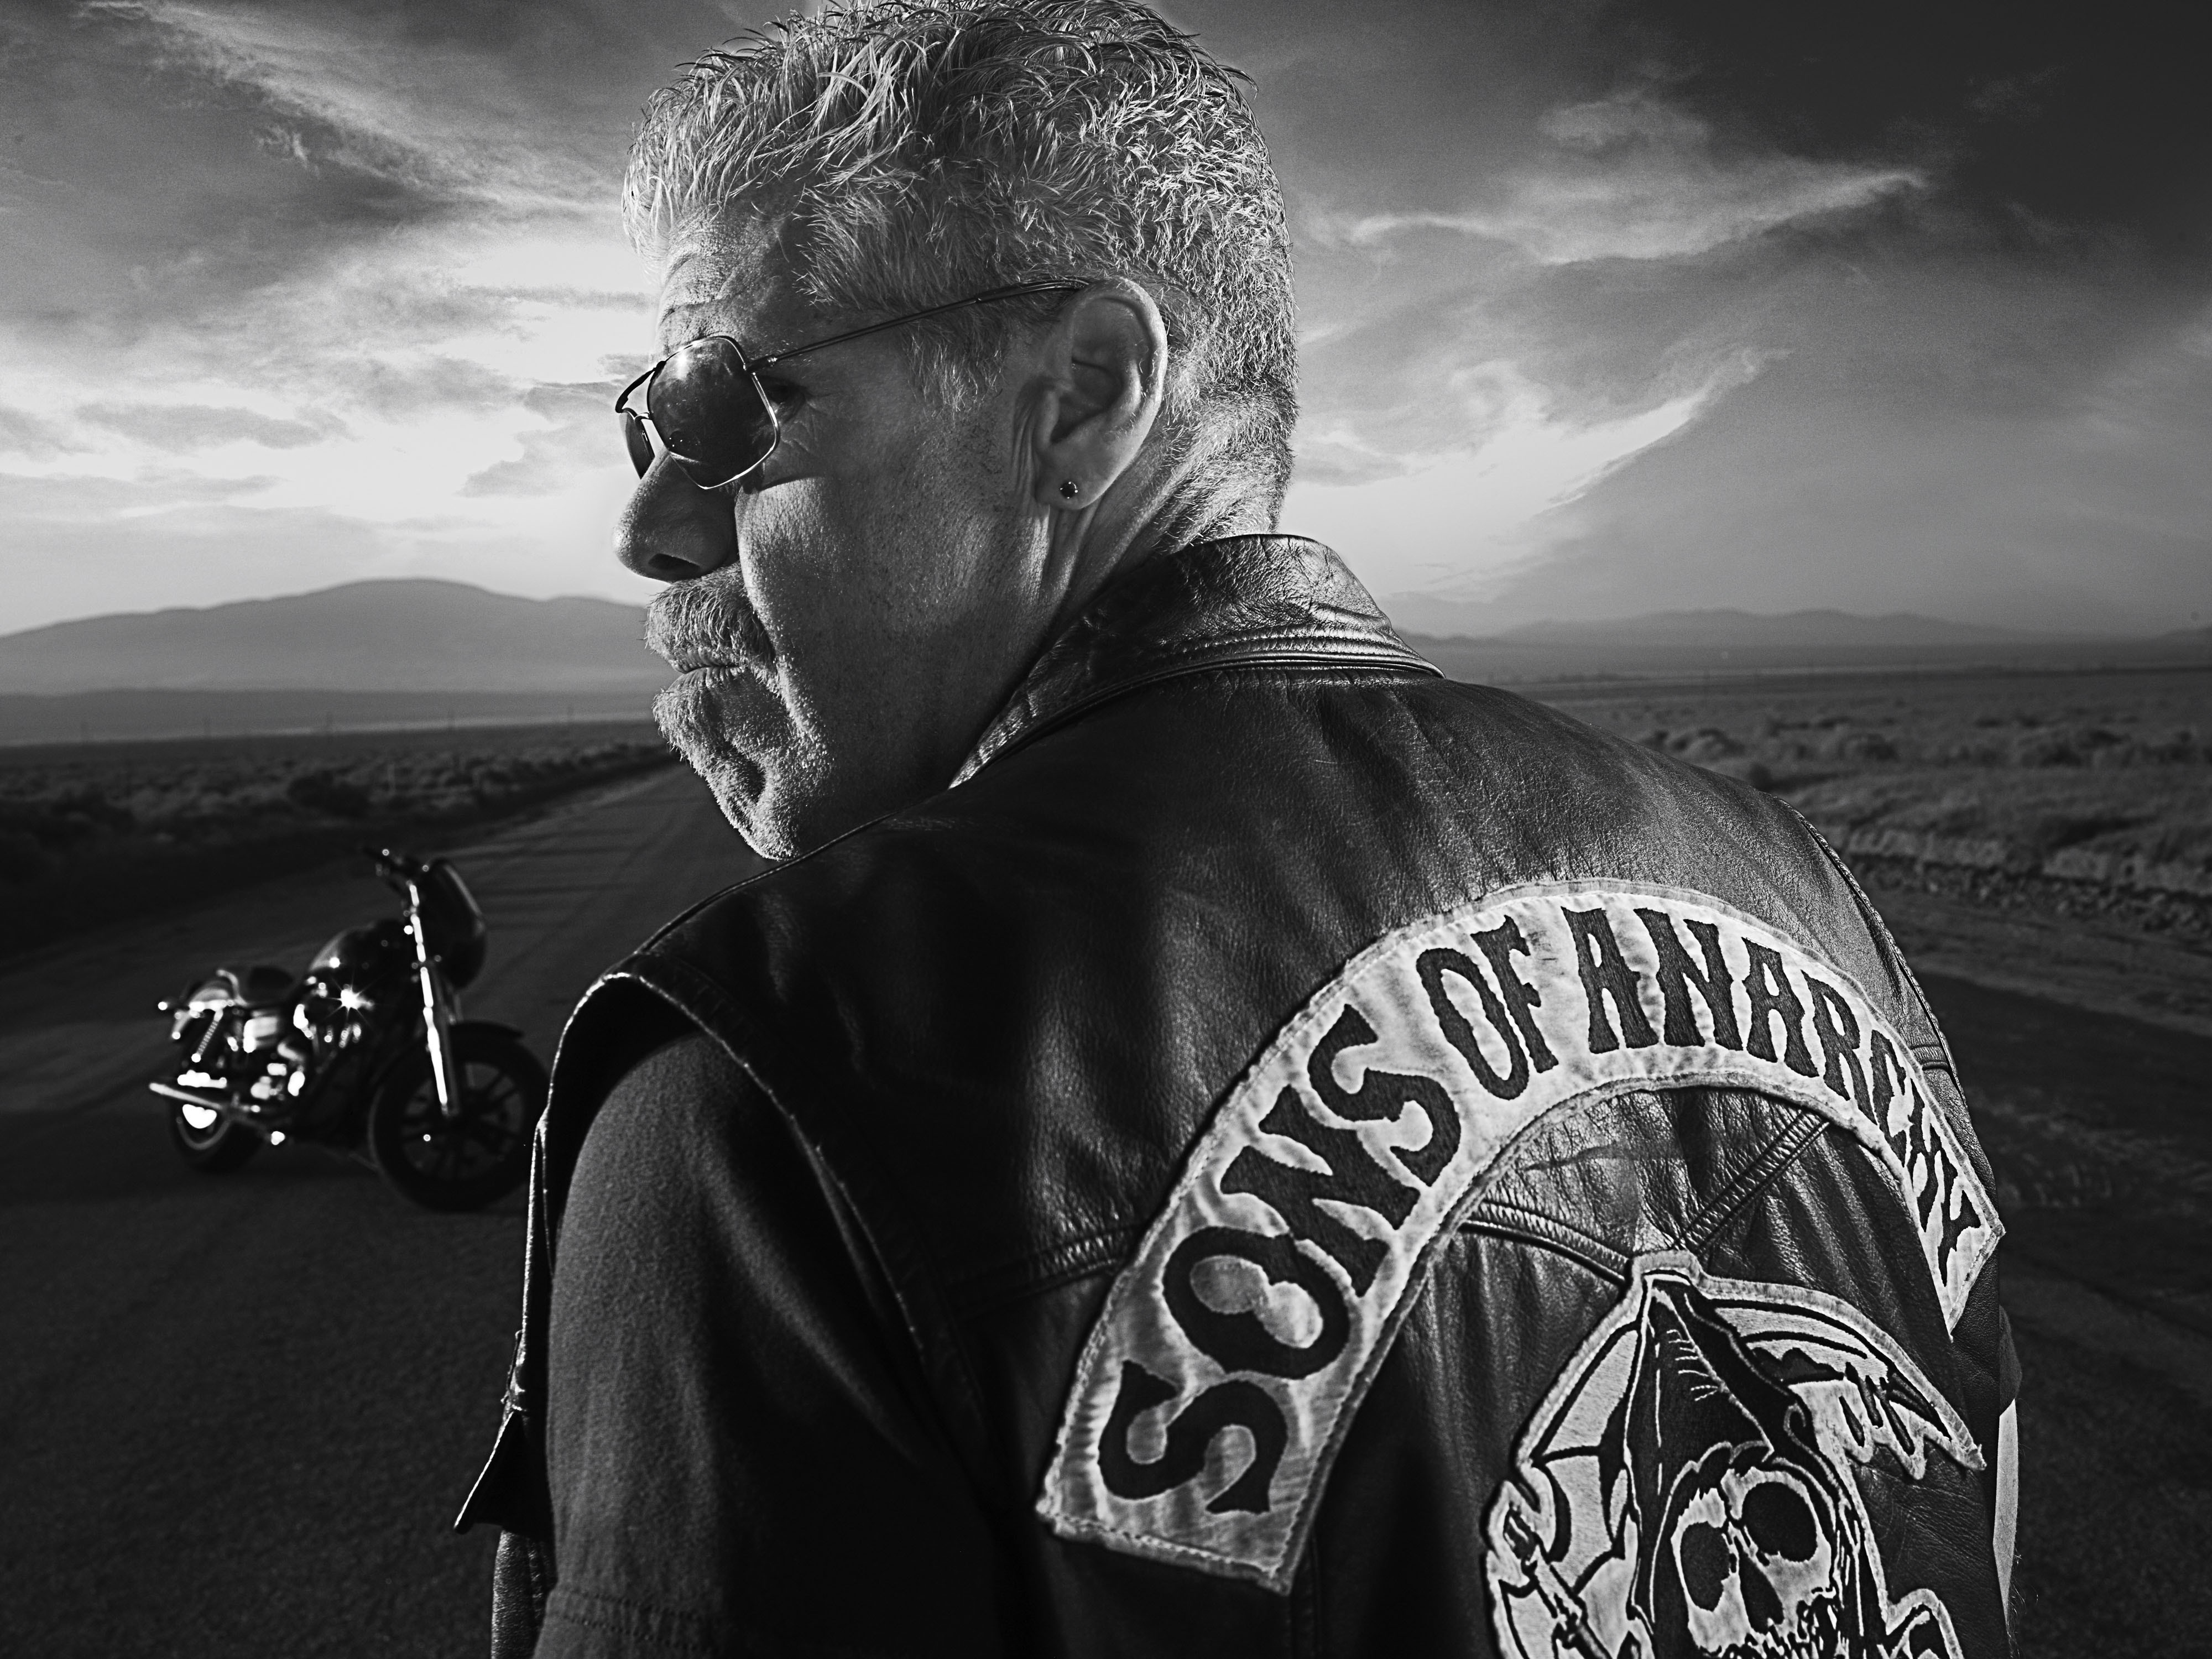 sons of anarchy monochrome HD Wallpaper